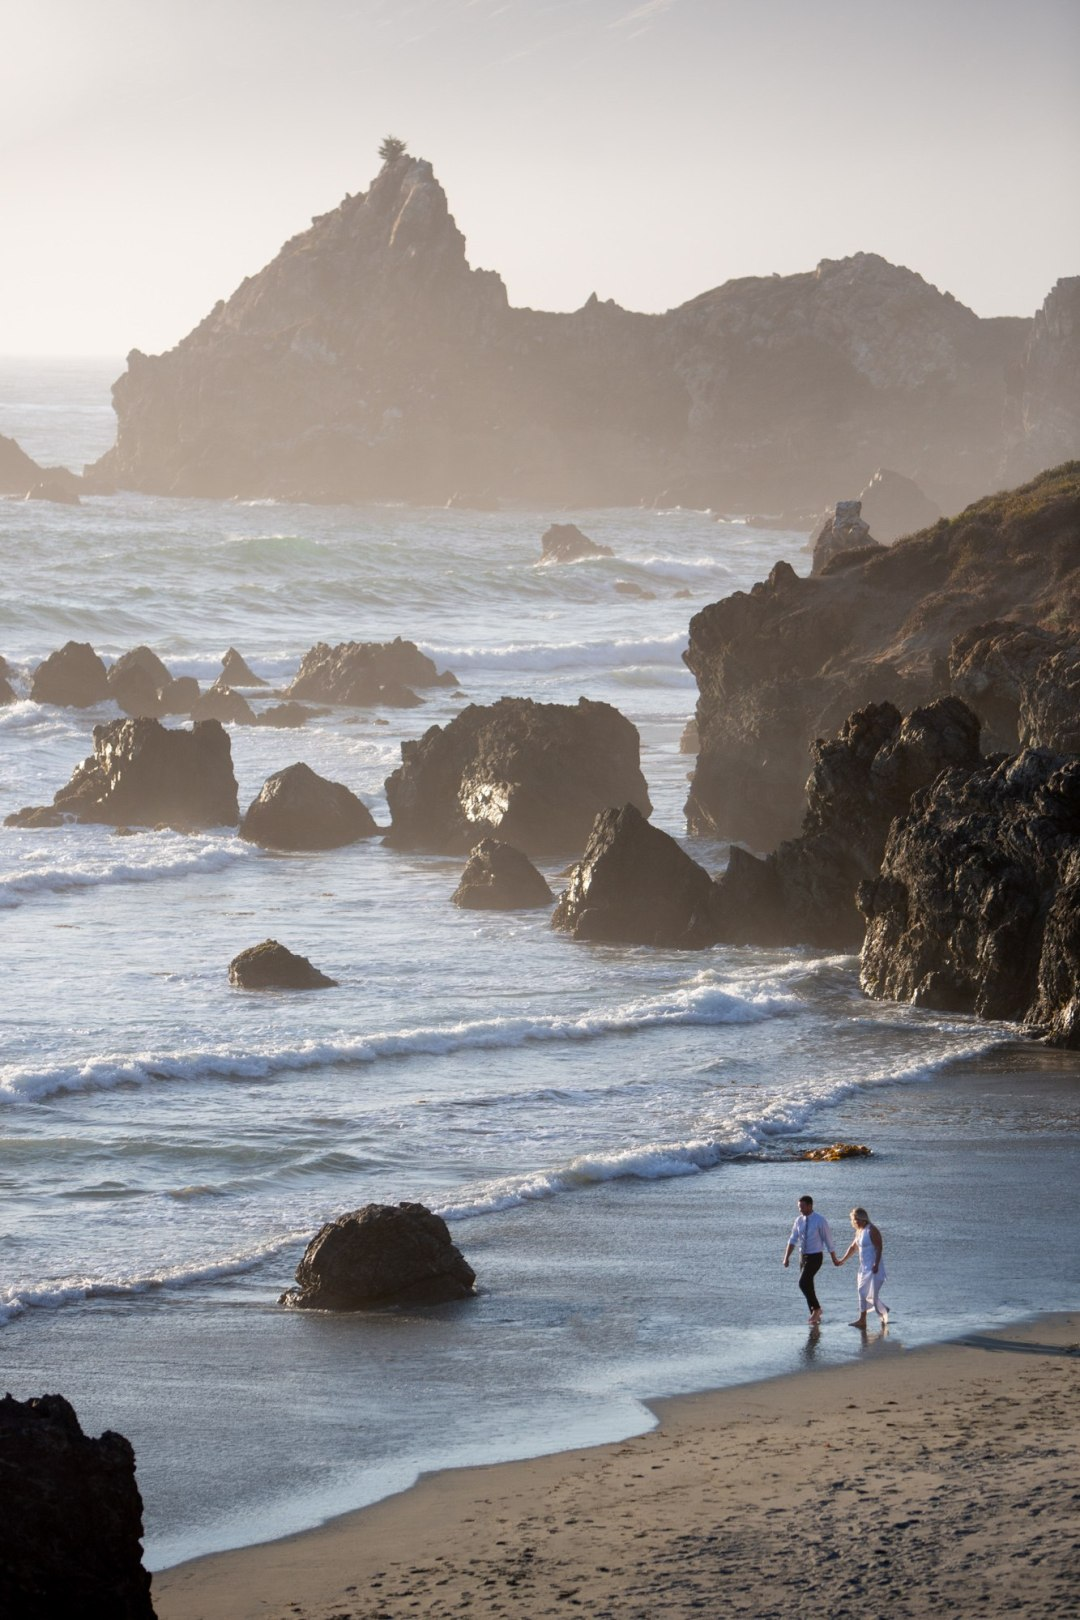 Newly weds walking on their own private beach after their amazing California elopement!